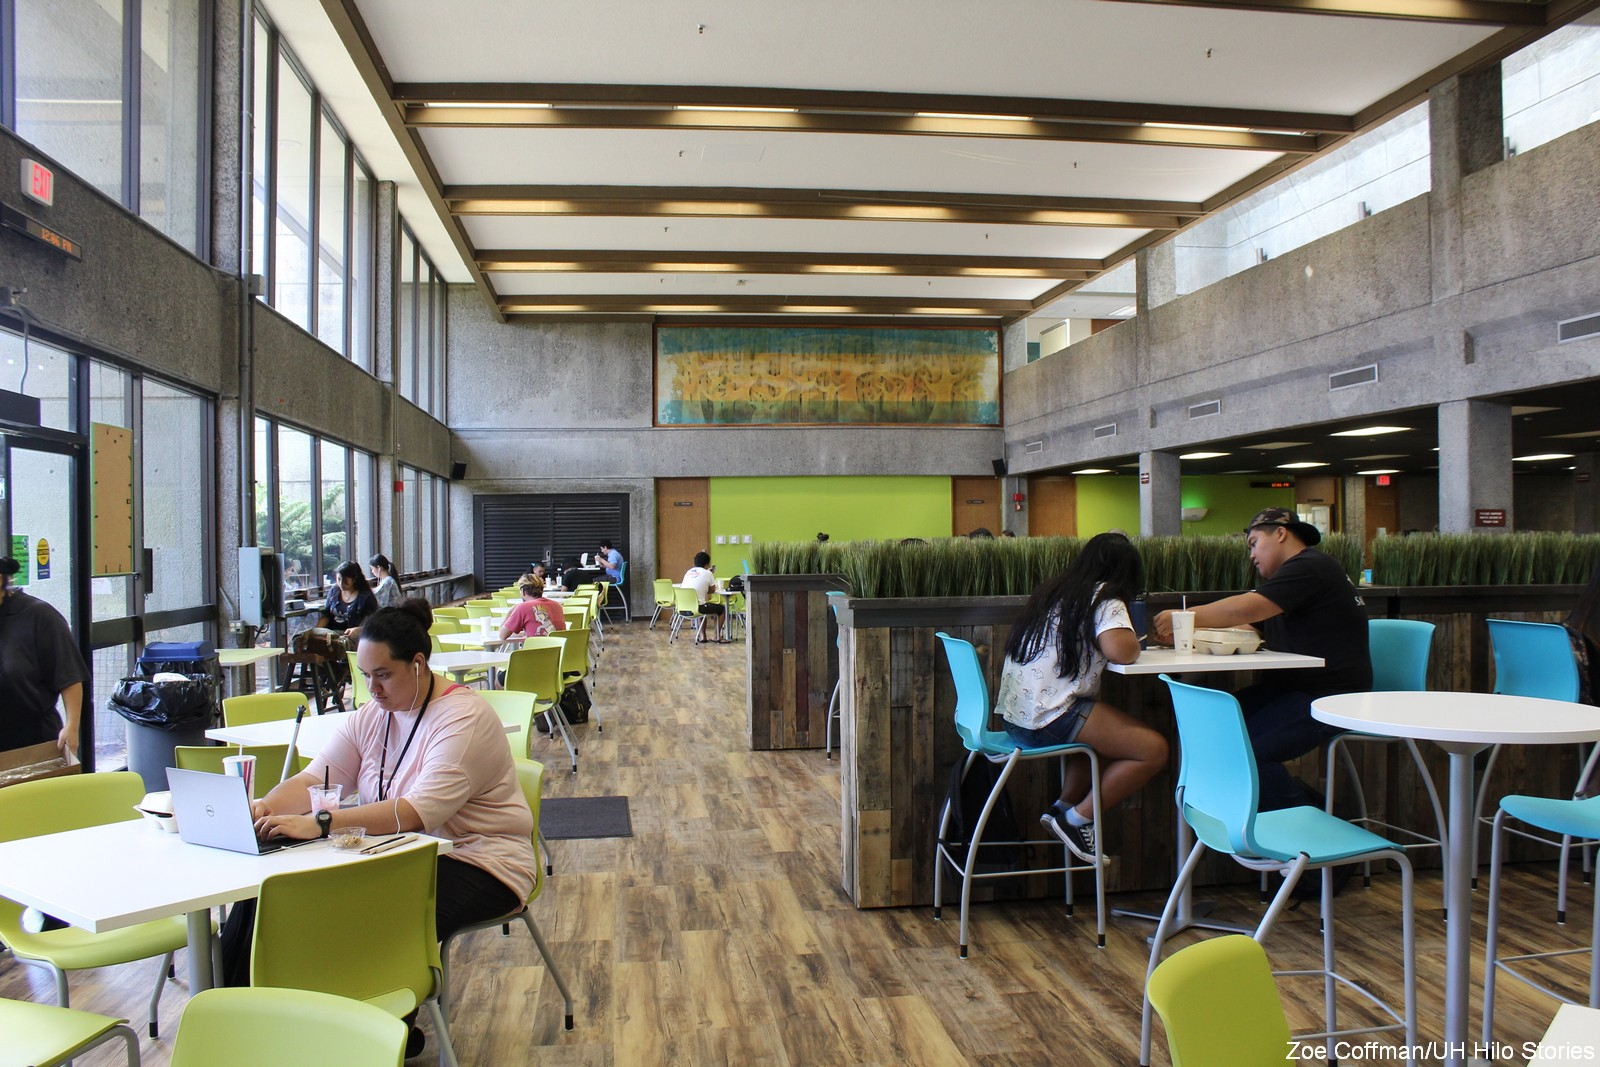 Rustic Modern Dining Room Tables E Komo Mai Uh Hilo Campus Center Dining Room Is